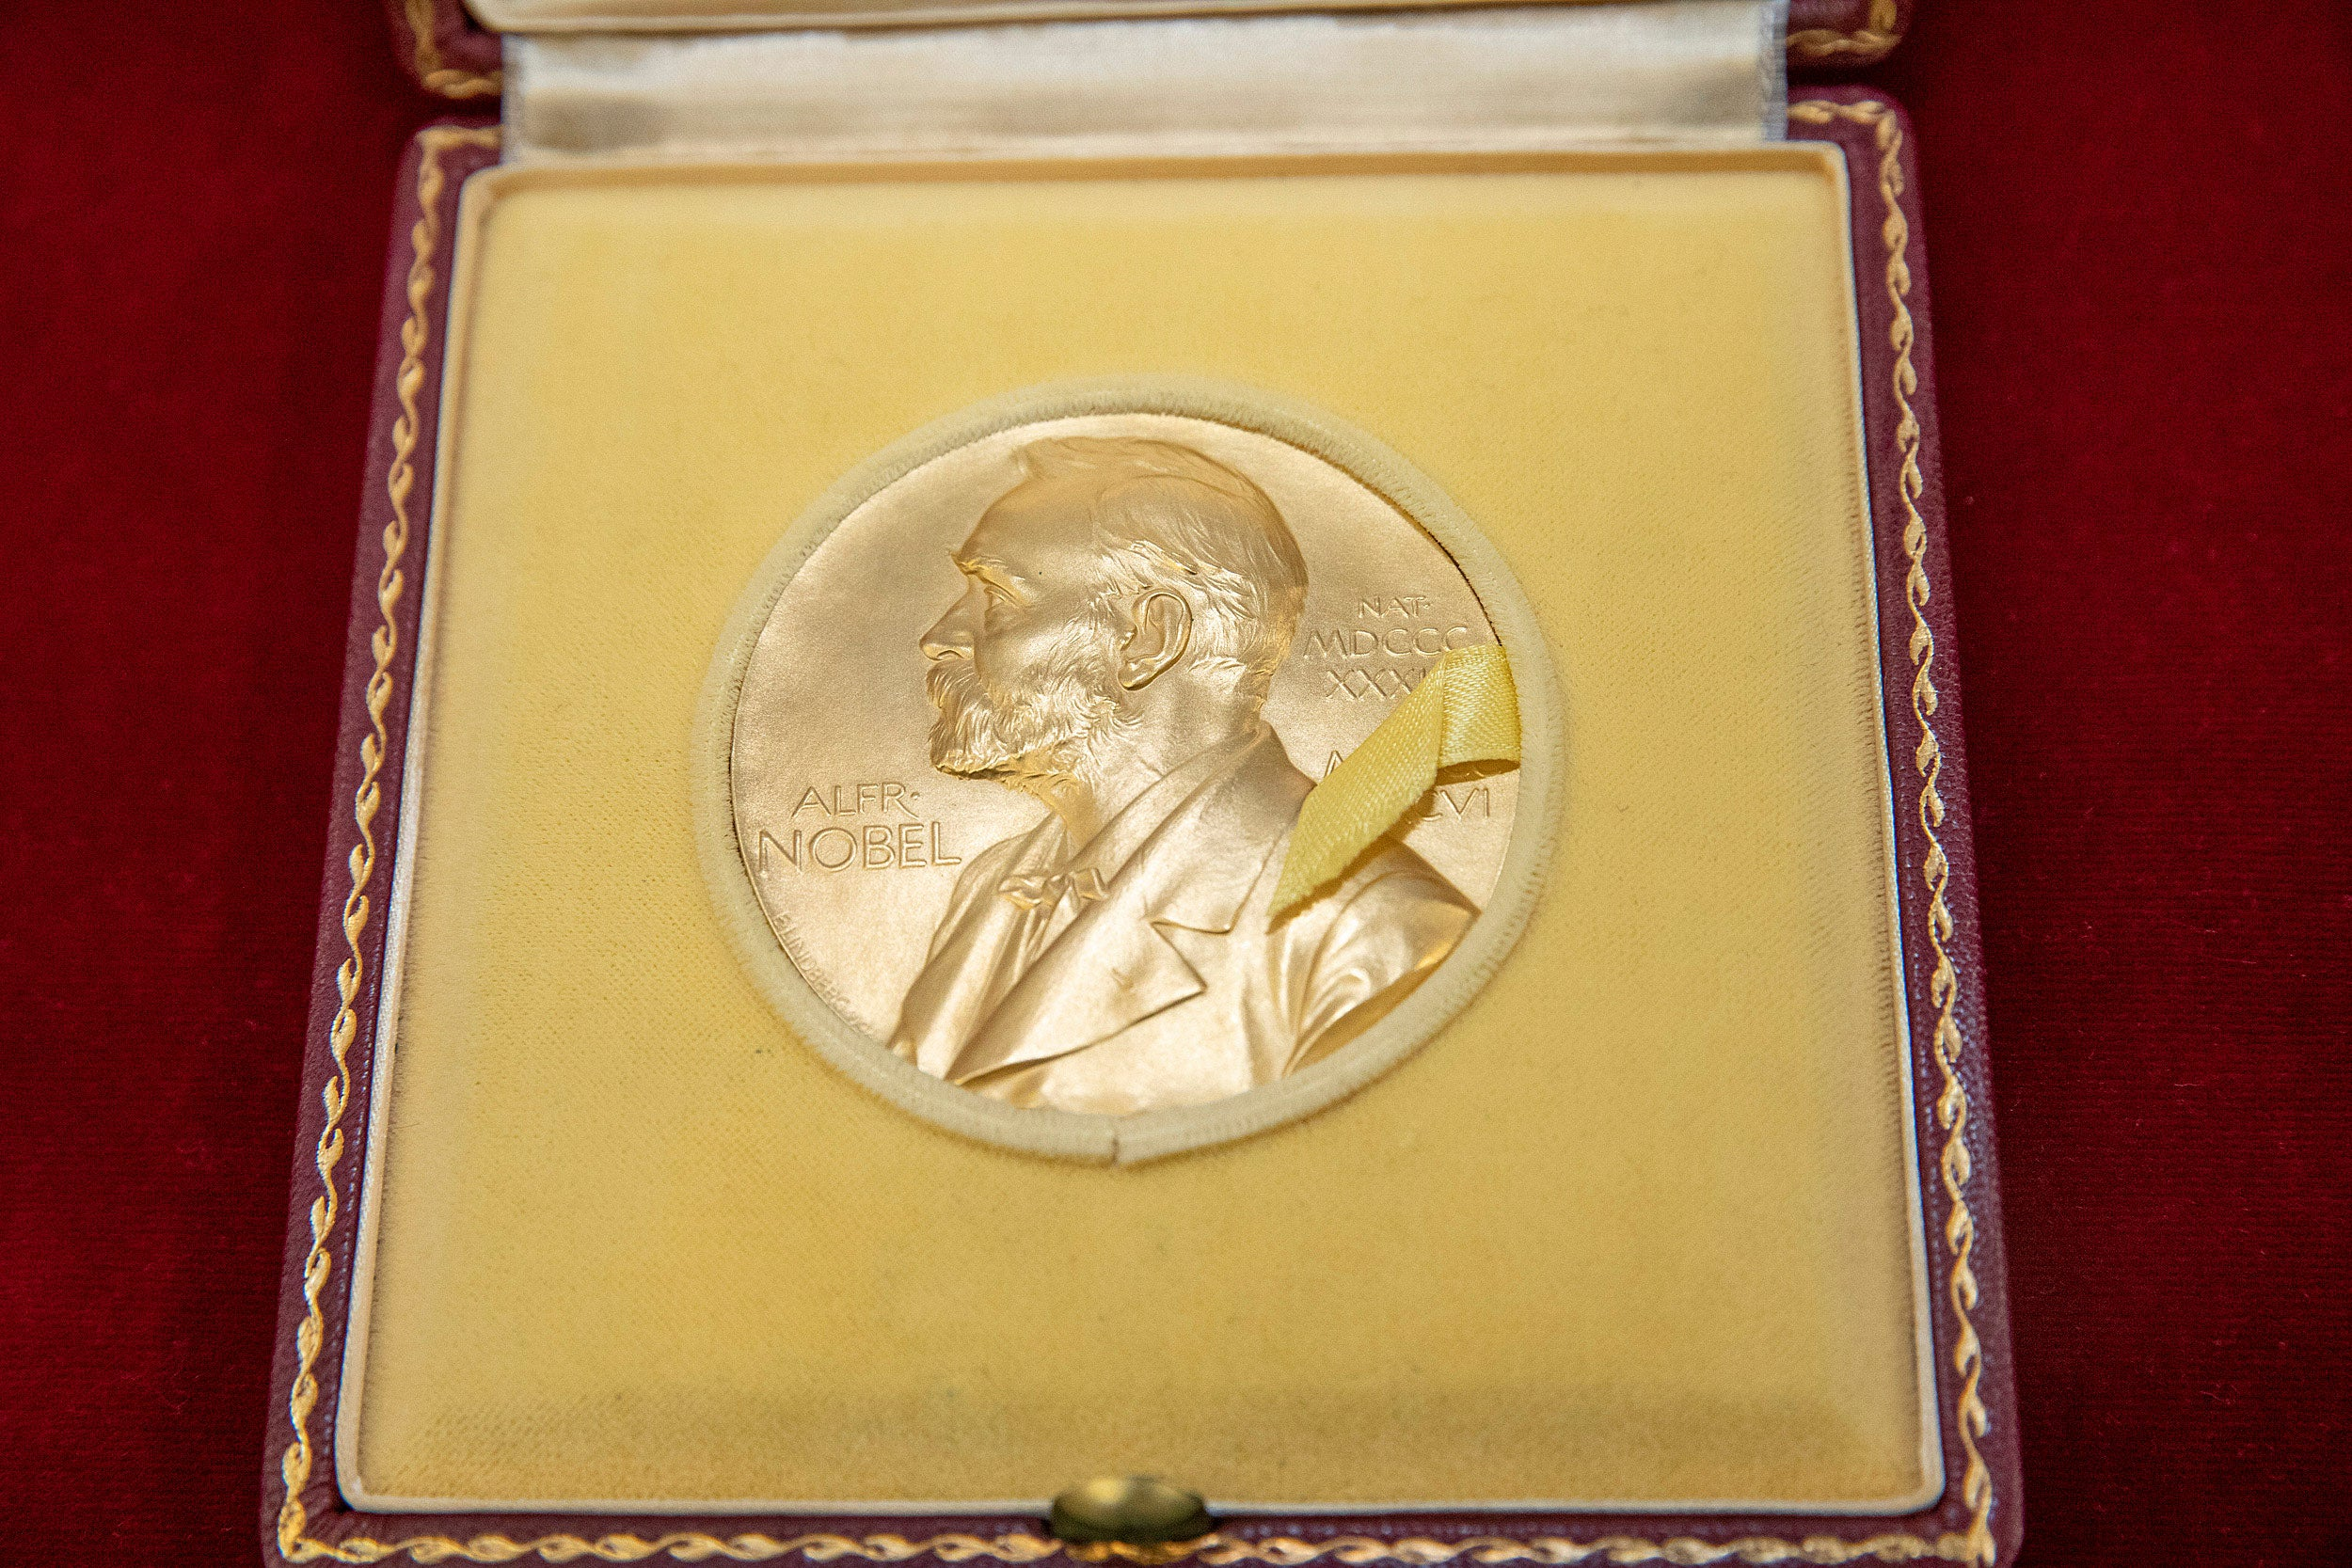 Photo of a Nobel Prize medal